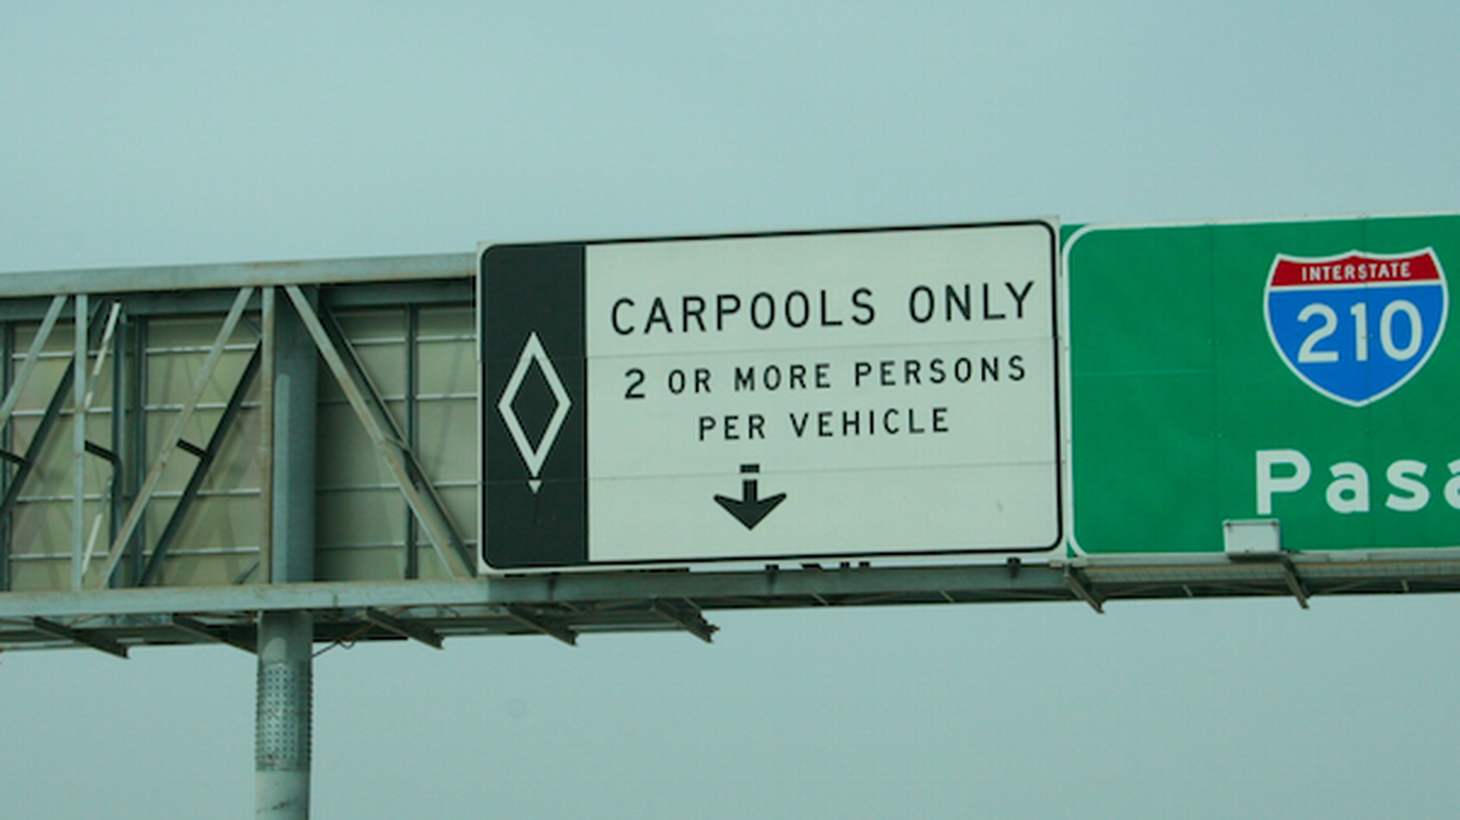 Federal regulators say HOV lanes should move at 45 miles-per-hour or more. However, L.A.'s lanes get going that fast only about 30 percent of the time.